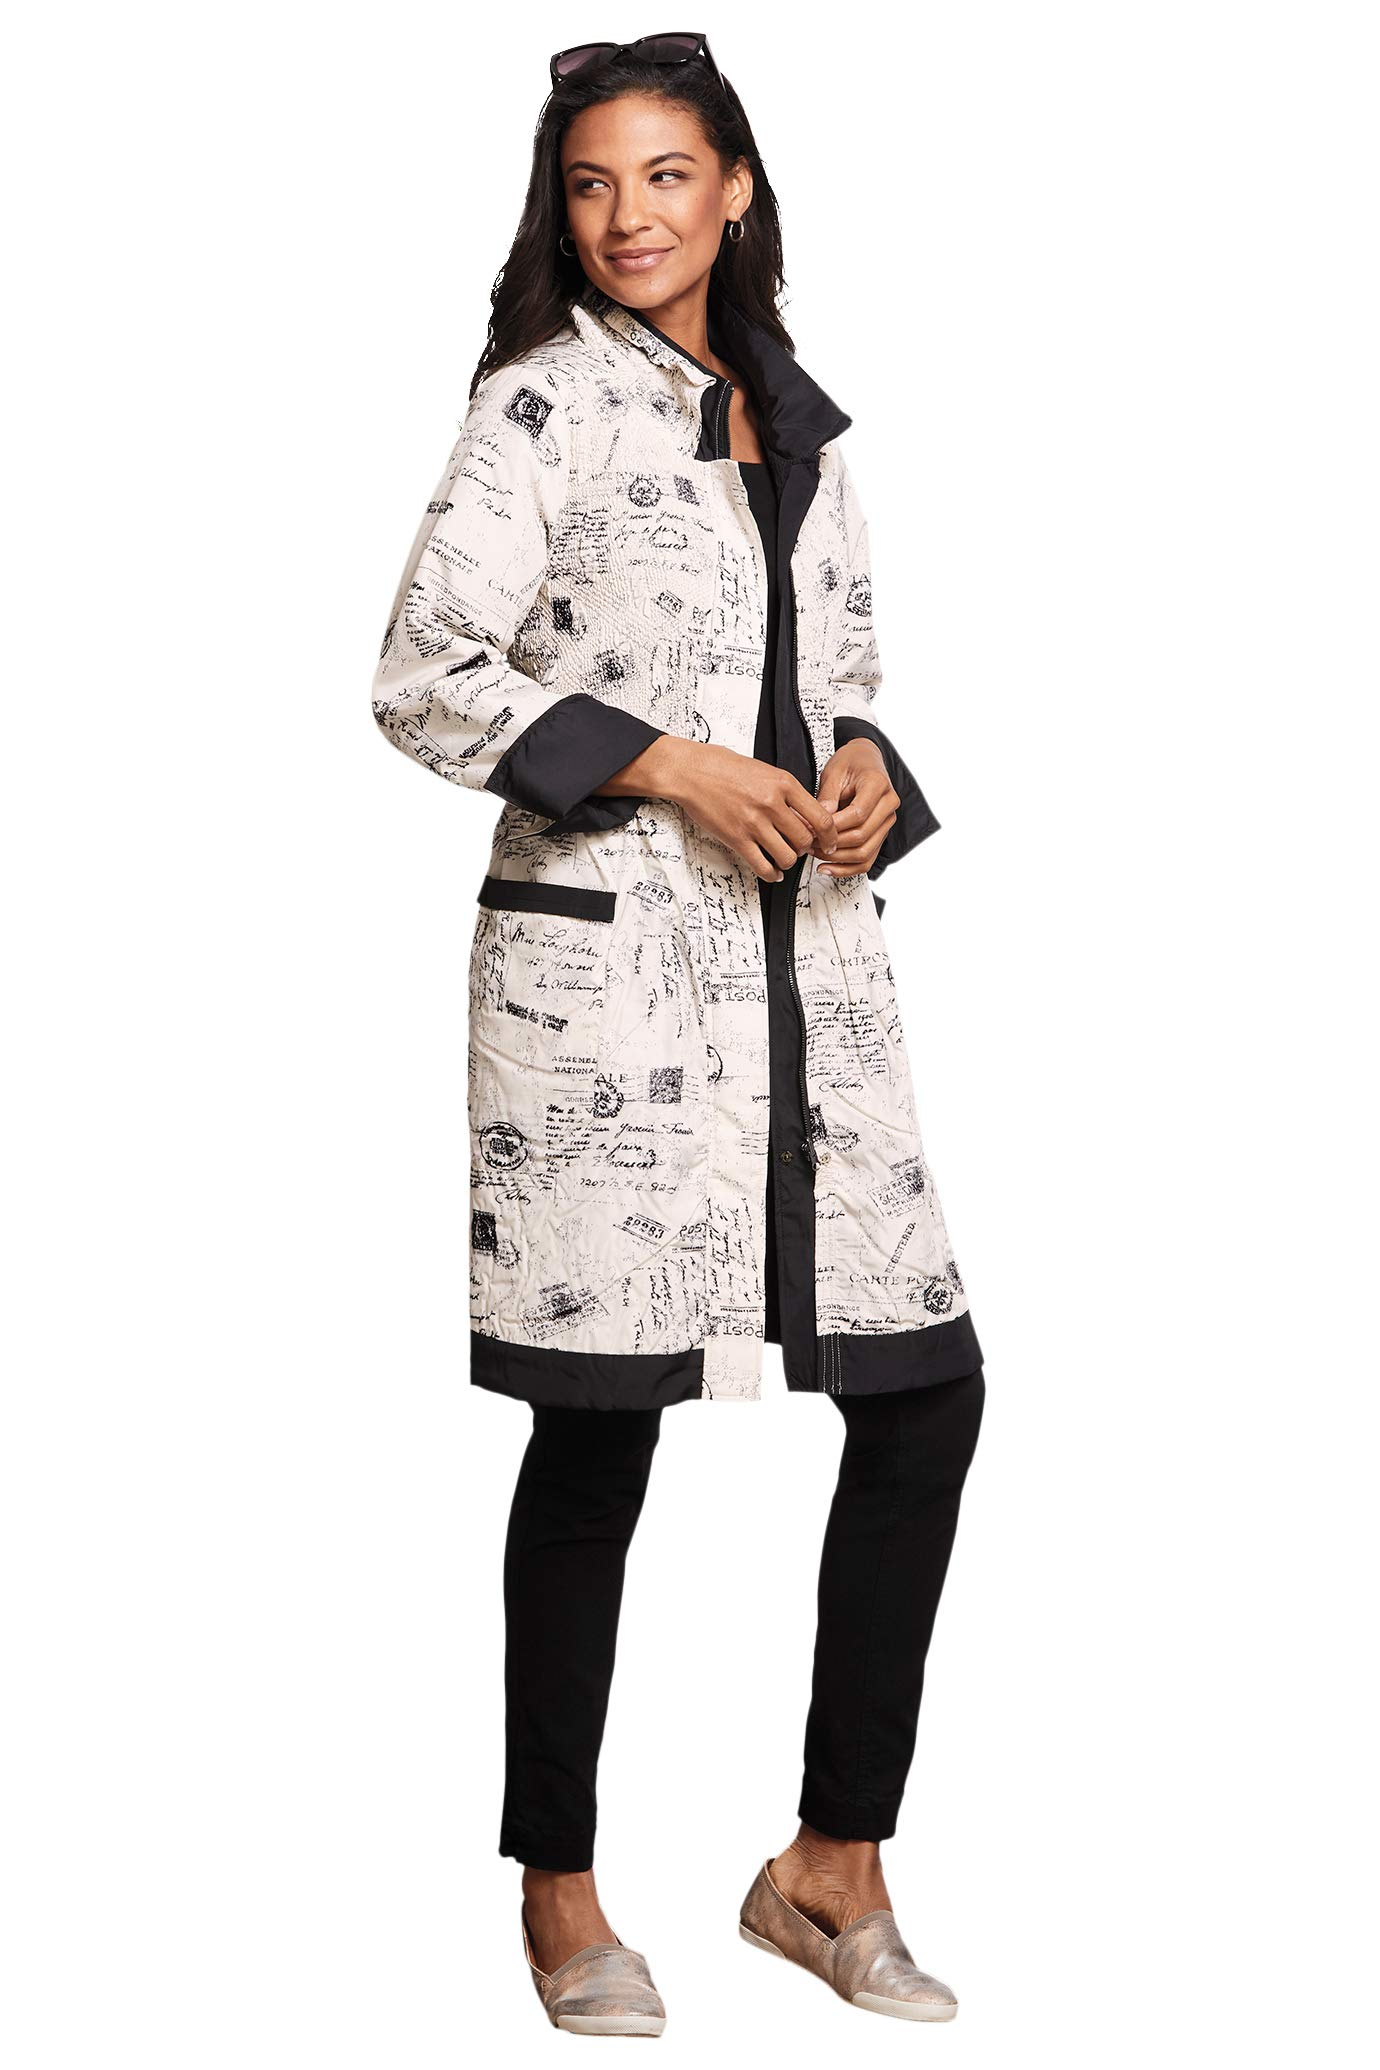 TravelSmith Postcard Print Coat